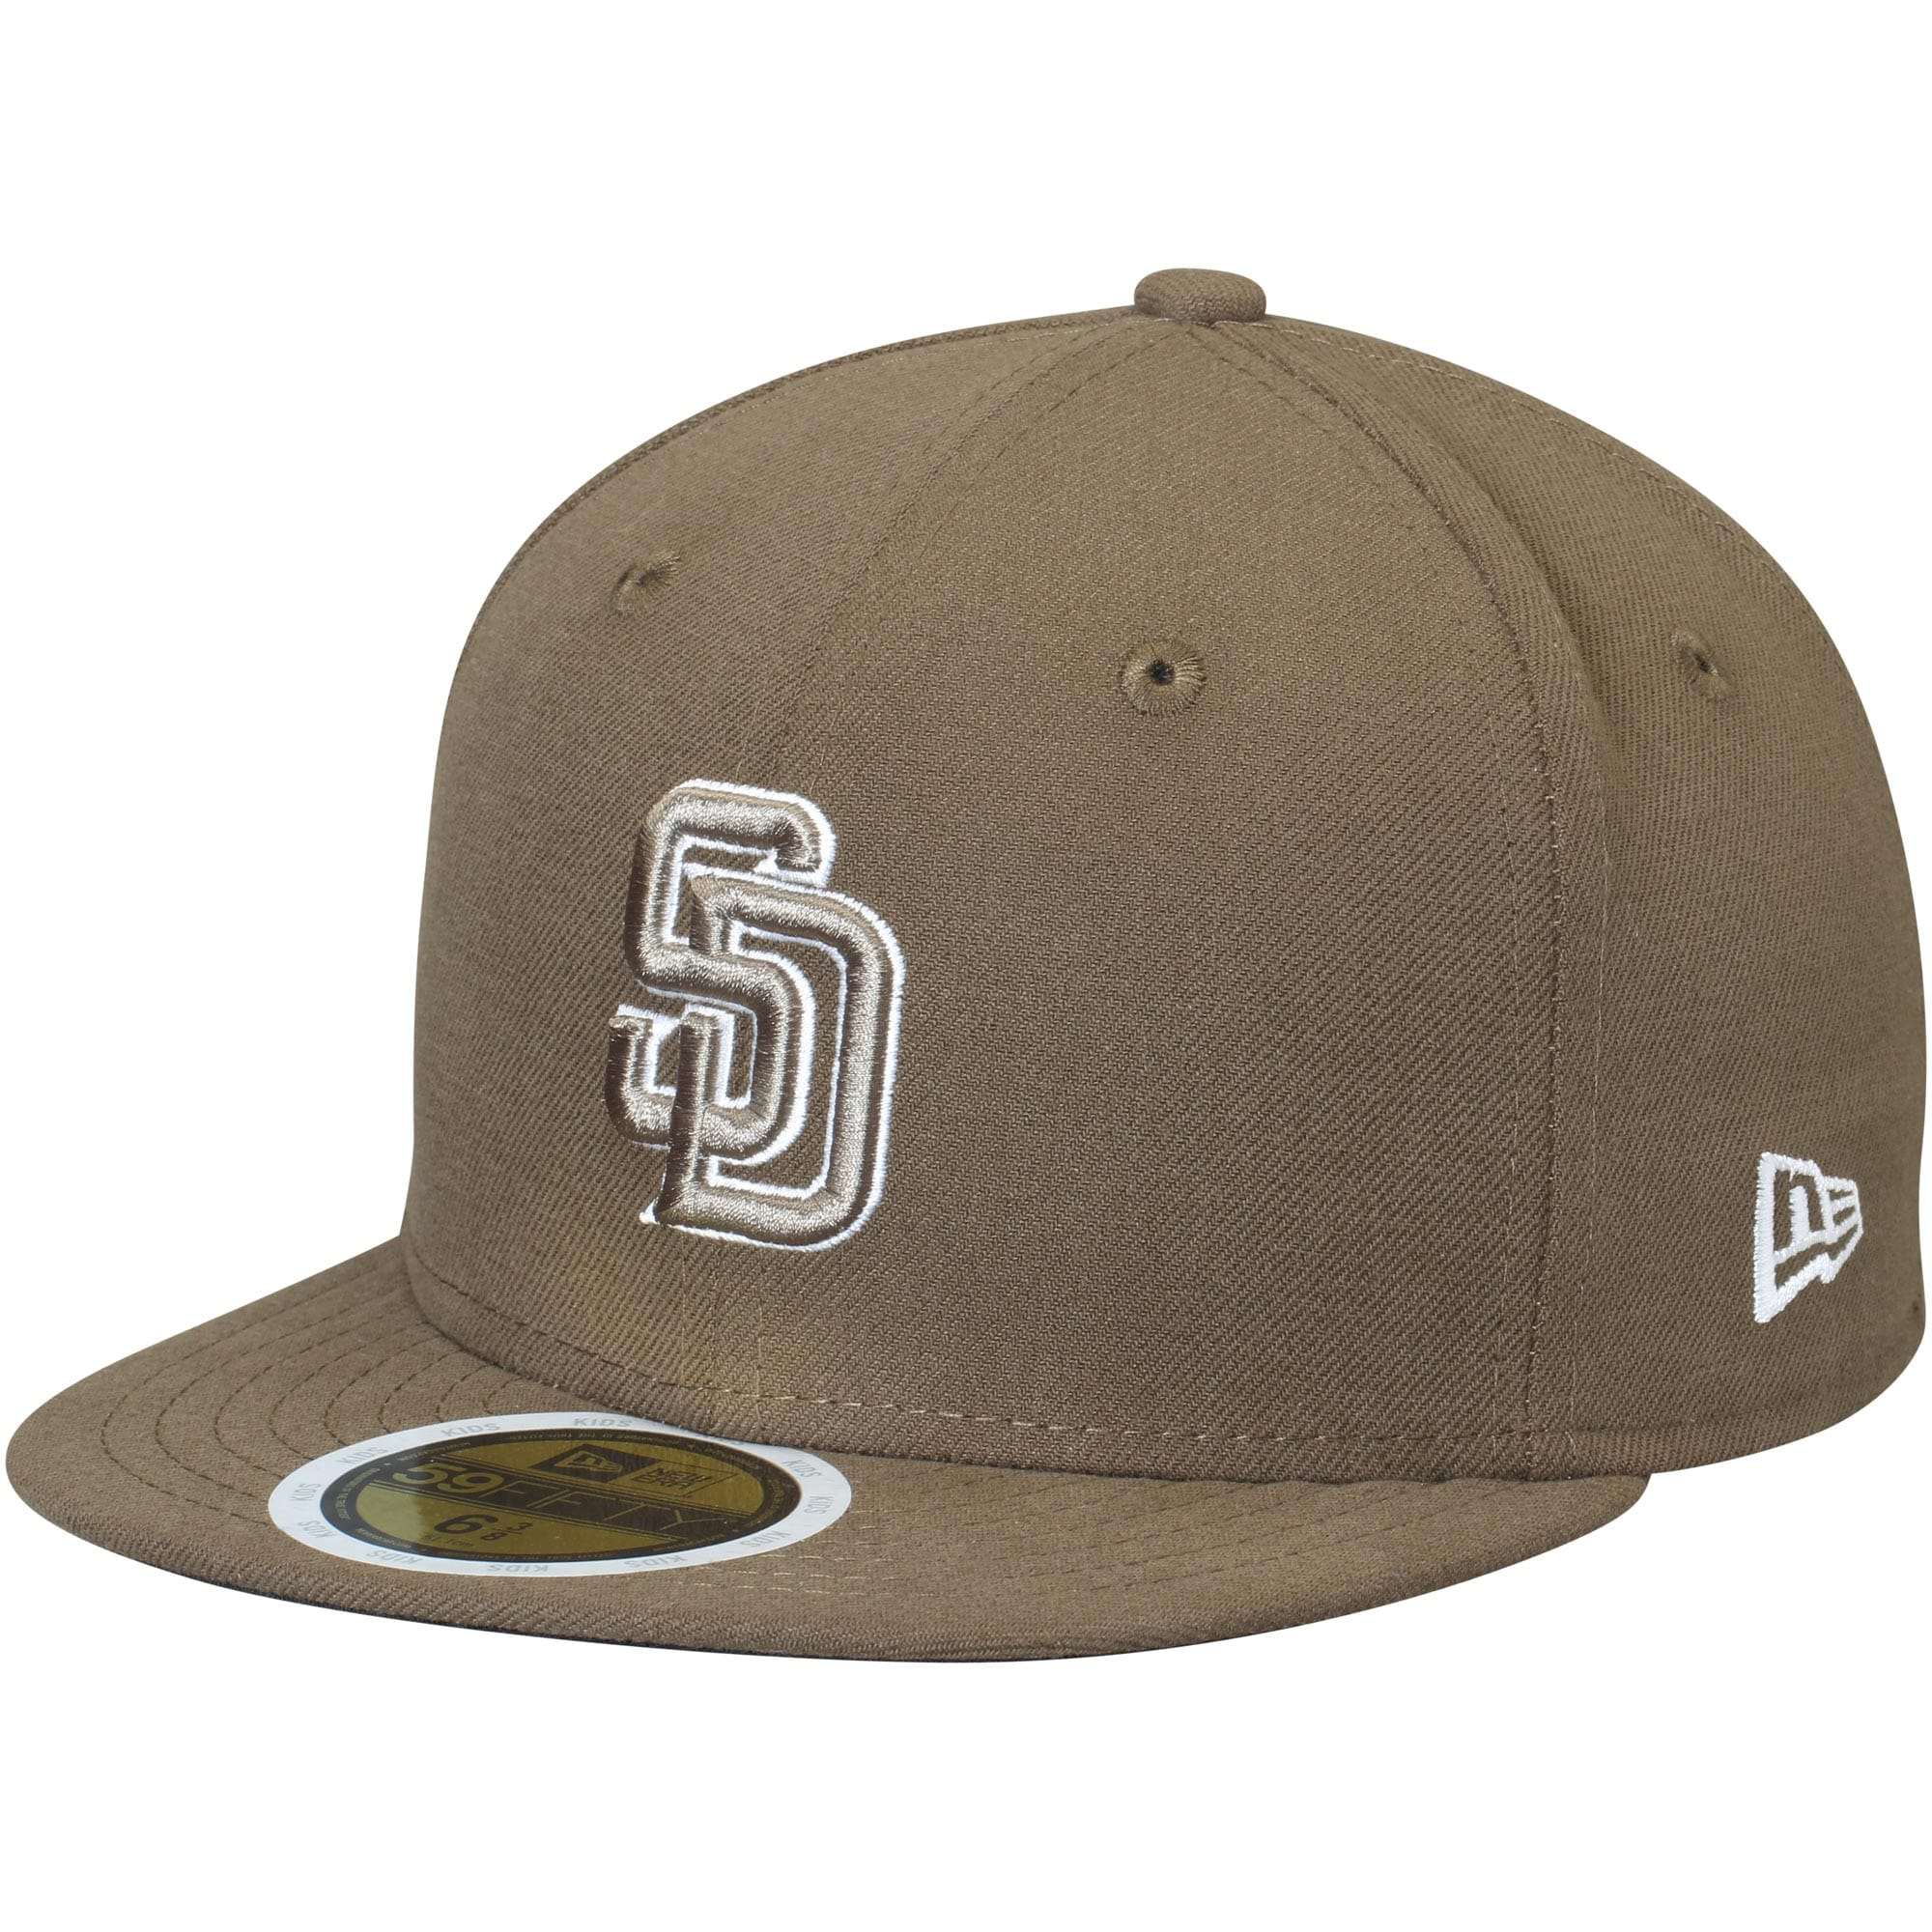 San Diego Padres New Era Youth Authentic Collection On-Field Alternate 59FIFTY Fitted Hat - Brown